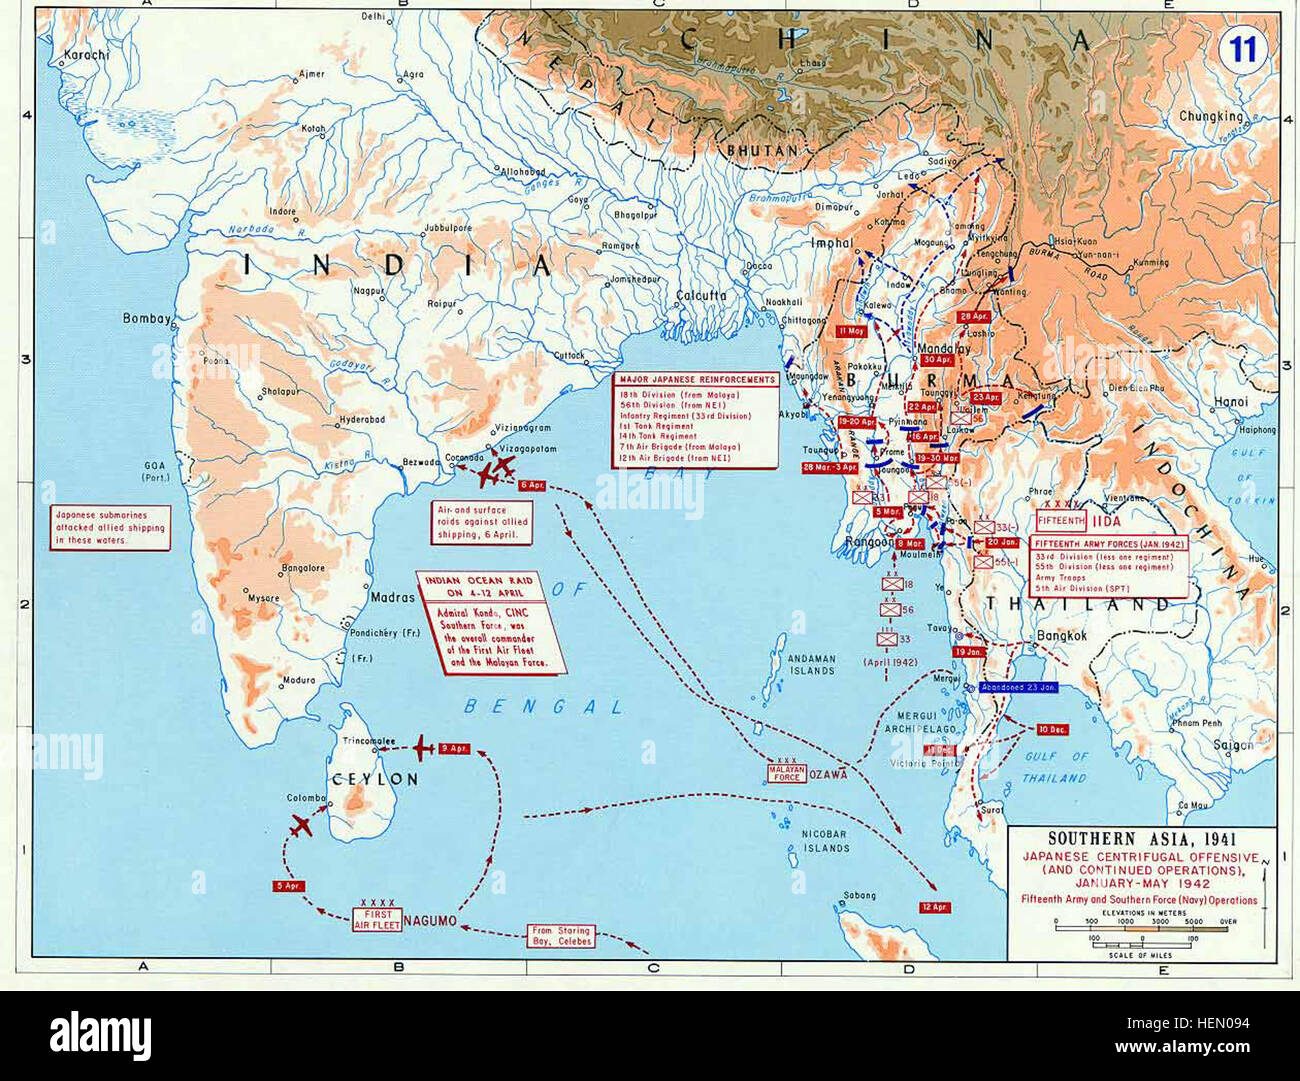 Pacific War - Southern Asia 1942 - Map Stock Photo ...